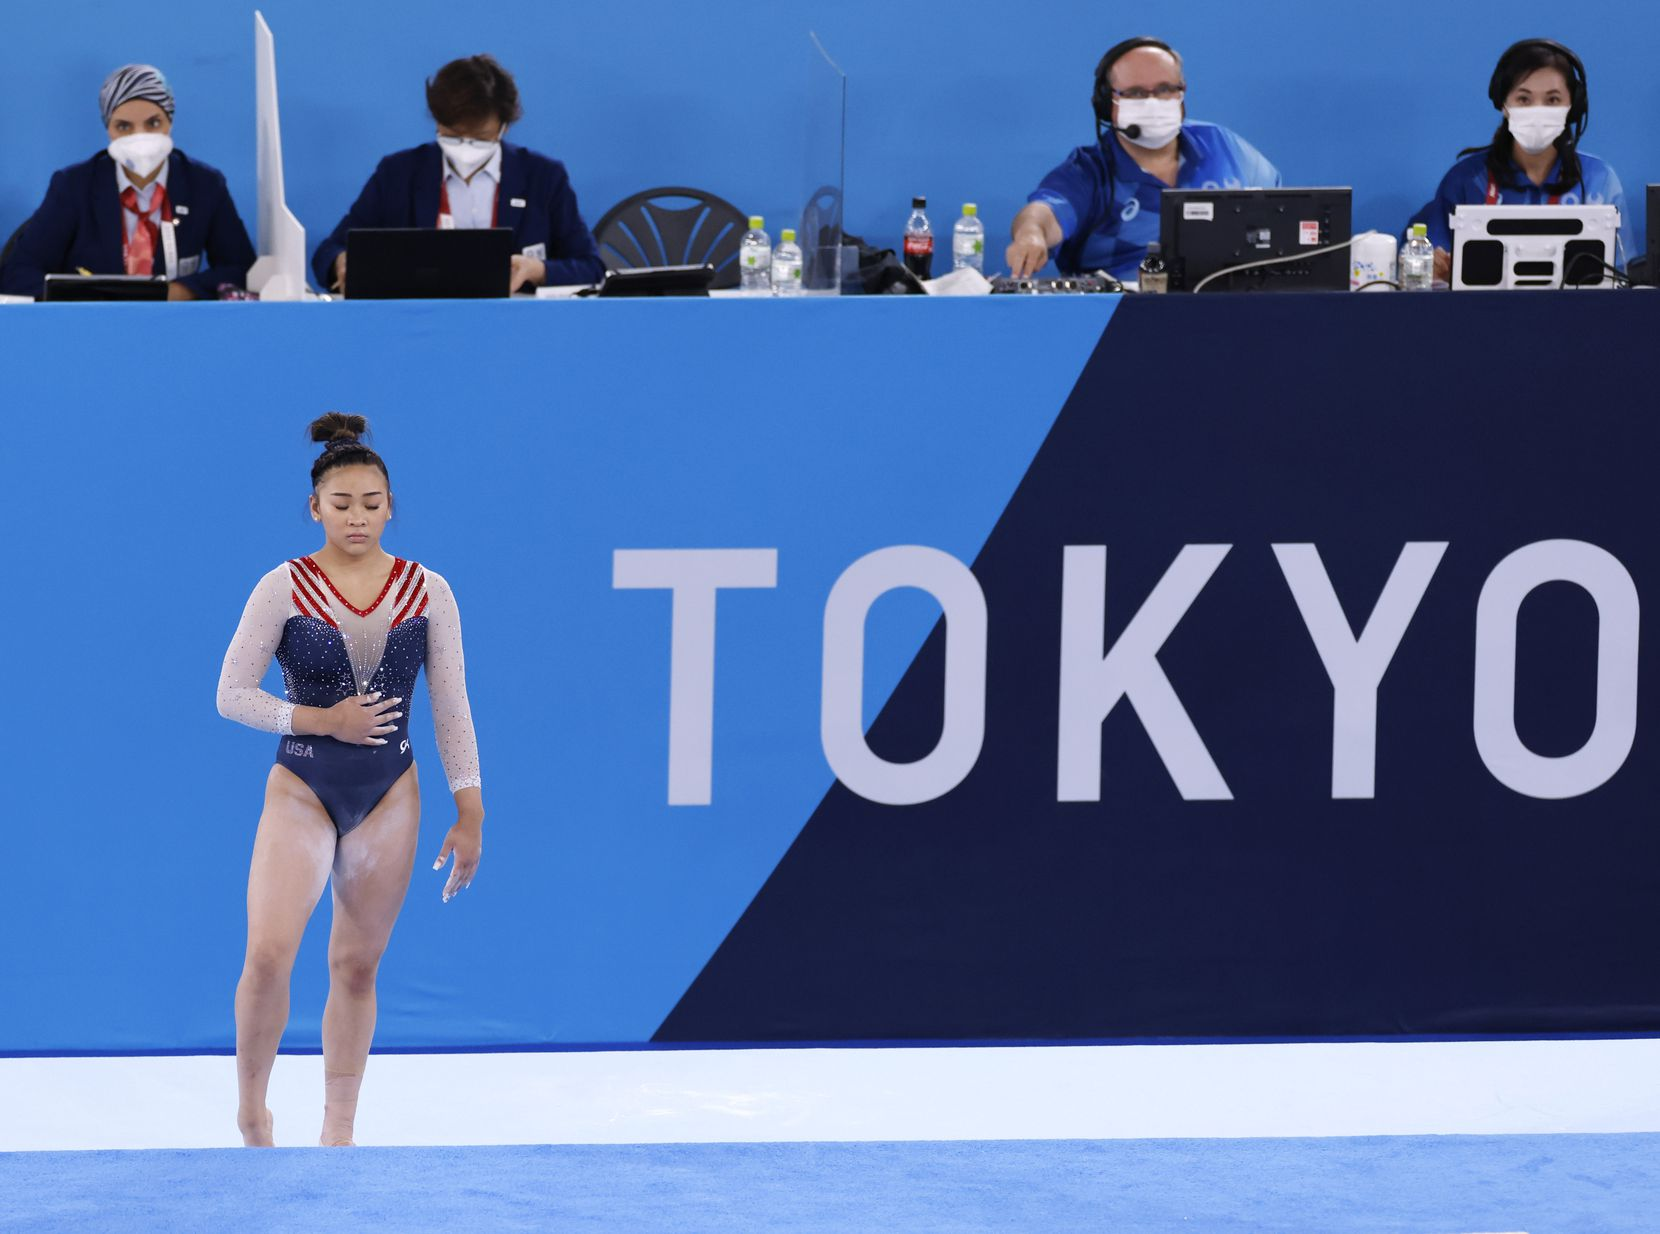 USA's Sunisa Lee prepares to perform her floor routine during the women's all-around final at the postponed 2020 Tokyo Olympics at Ariake Gymnastics Centre, on Thursday, July 29, 2021, in Tokyo, Japan. (Vernon Bryant/The Dallas Morning News)